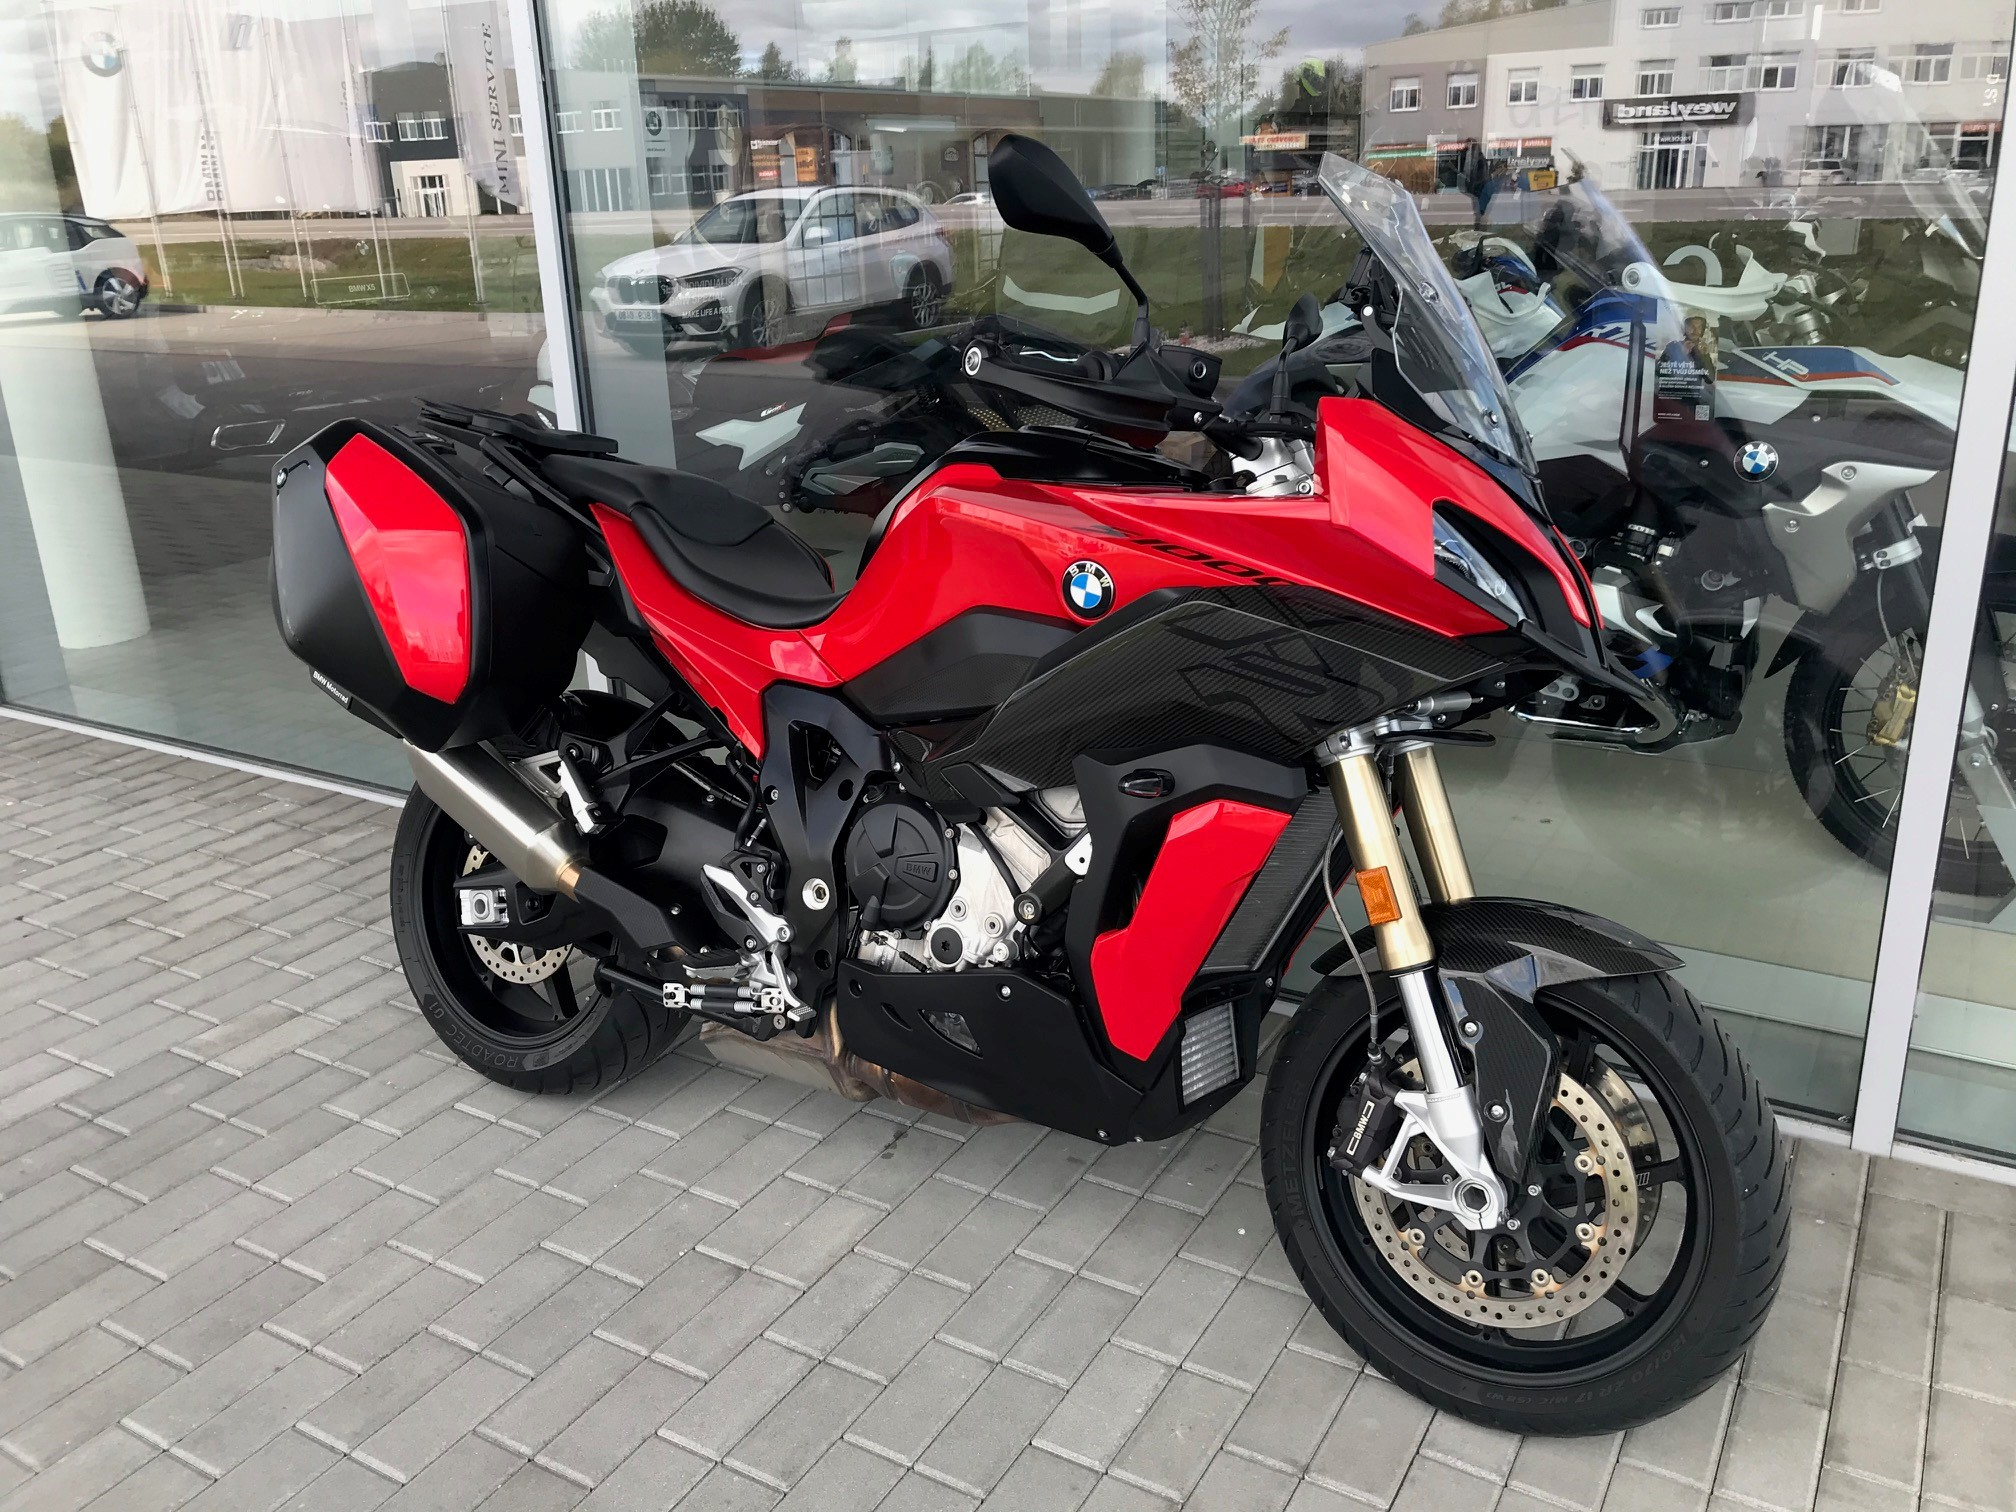 S 1000 XR<br>[7376694]